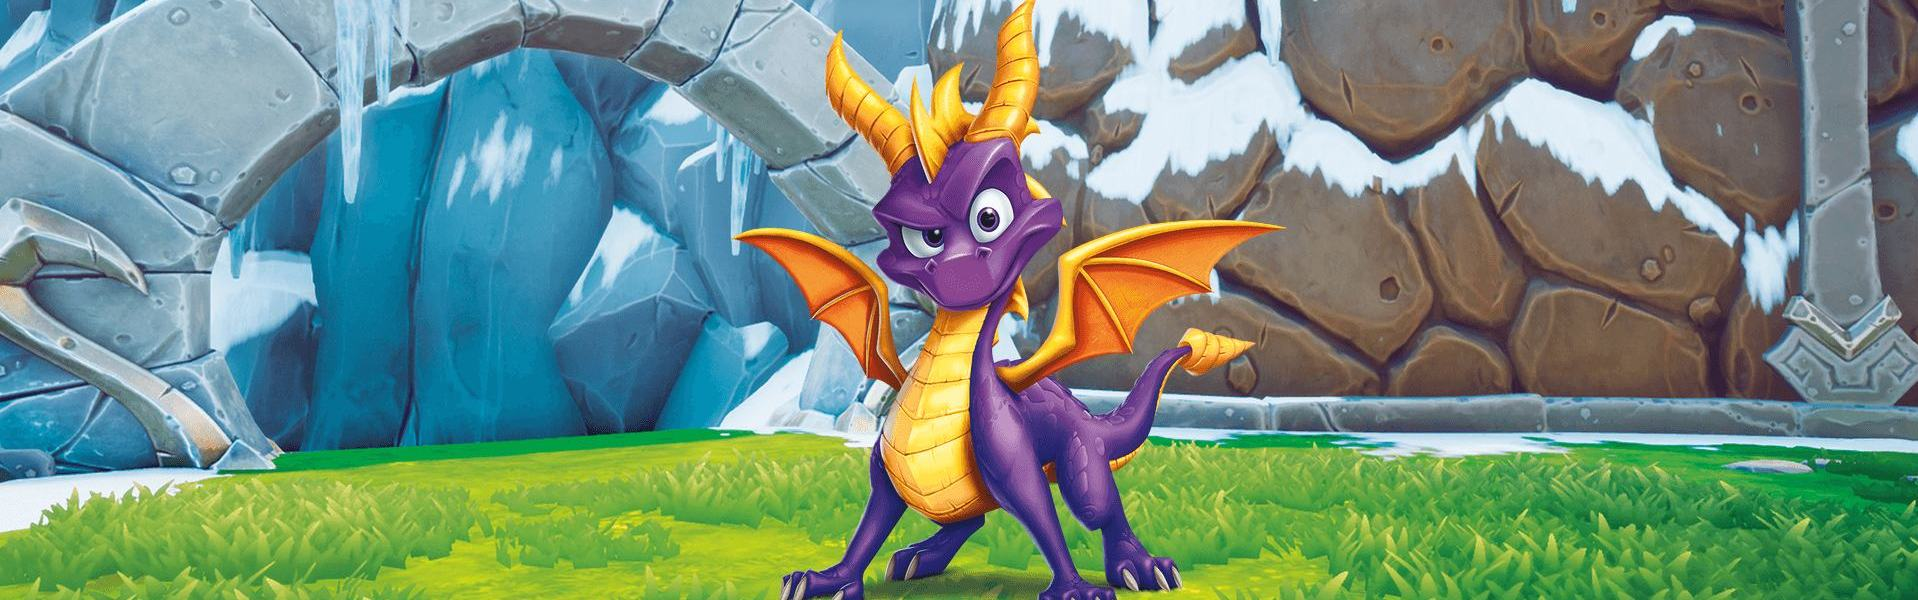 Spyro Reignited Trilogy Steam Key EUROPE